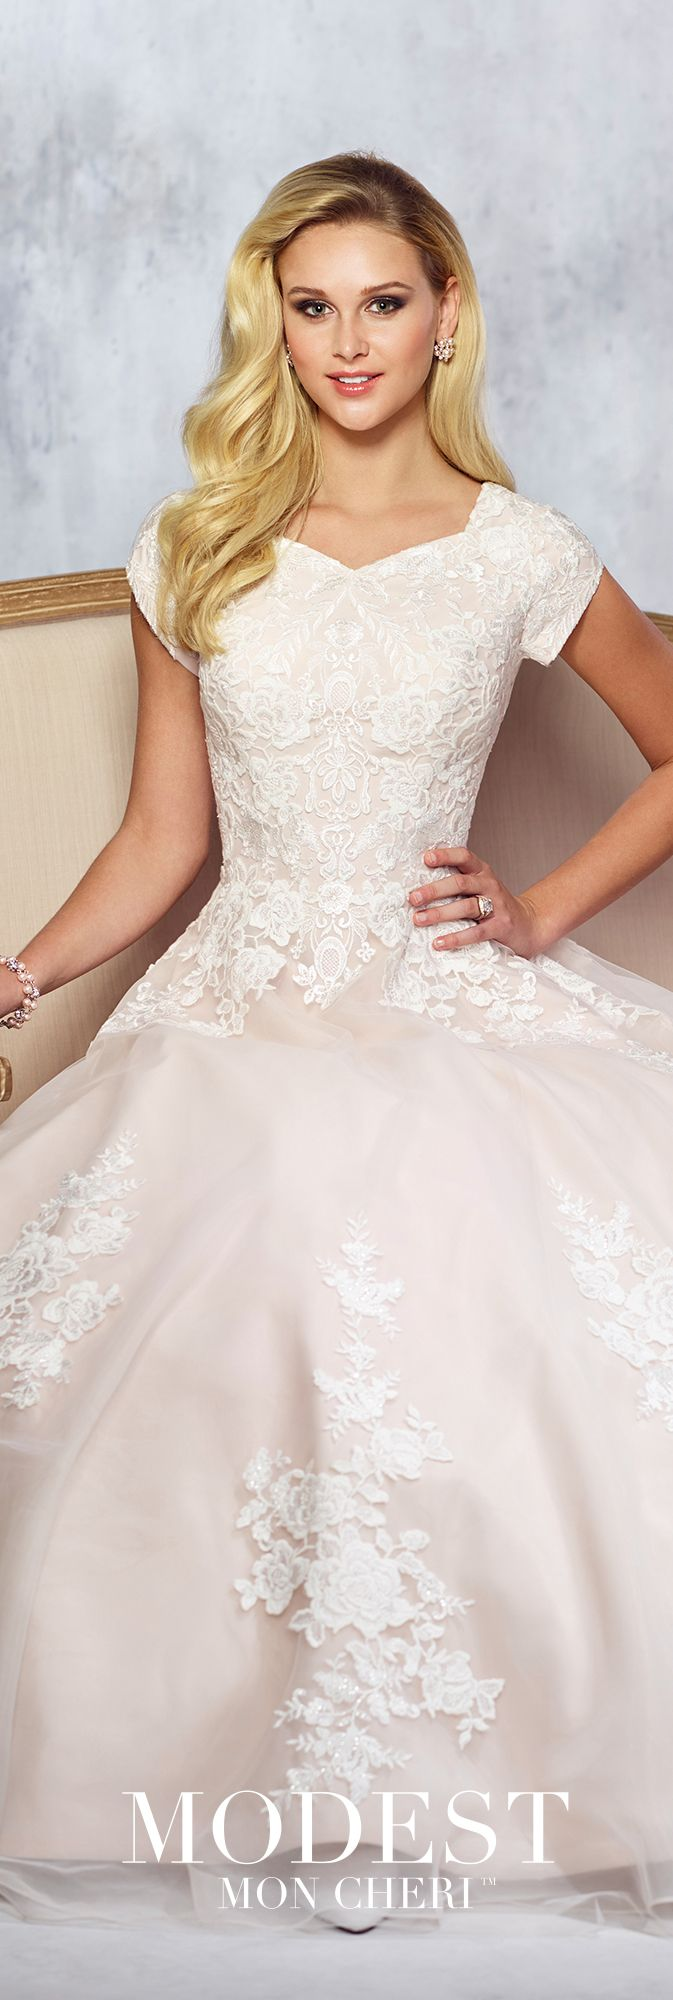 Modest Wedding Dresses Fall 2017 Collection - Style No. TR21714 - tulle and Belgium lace full A-line weddig dress with lace accented cap sleeves